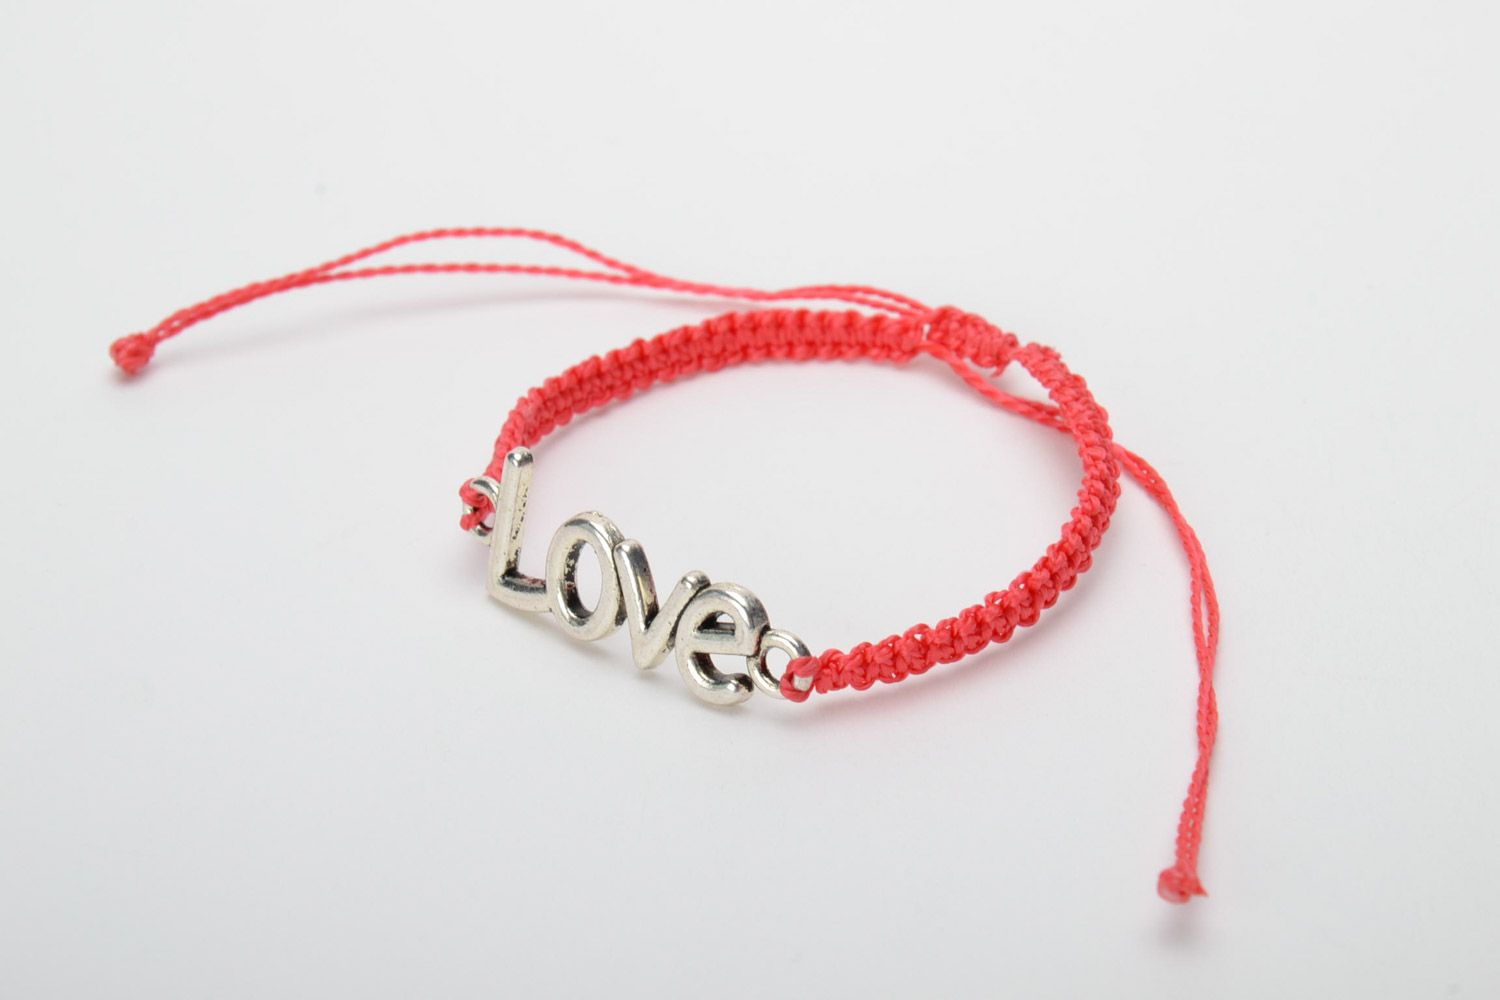 Handmade women's woven cord bracelet of red color with metal charm lettering photo 3